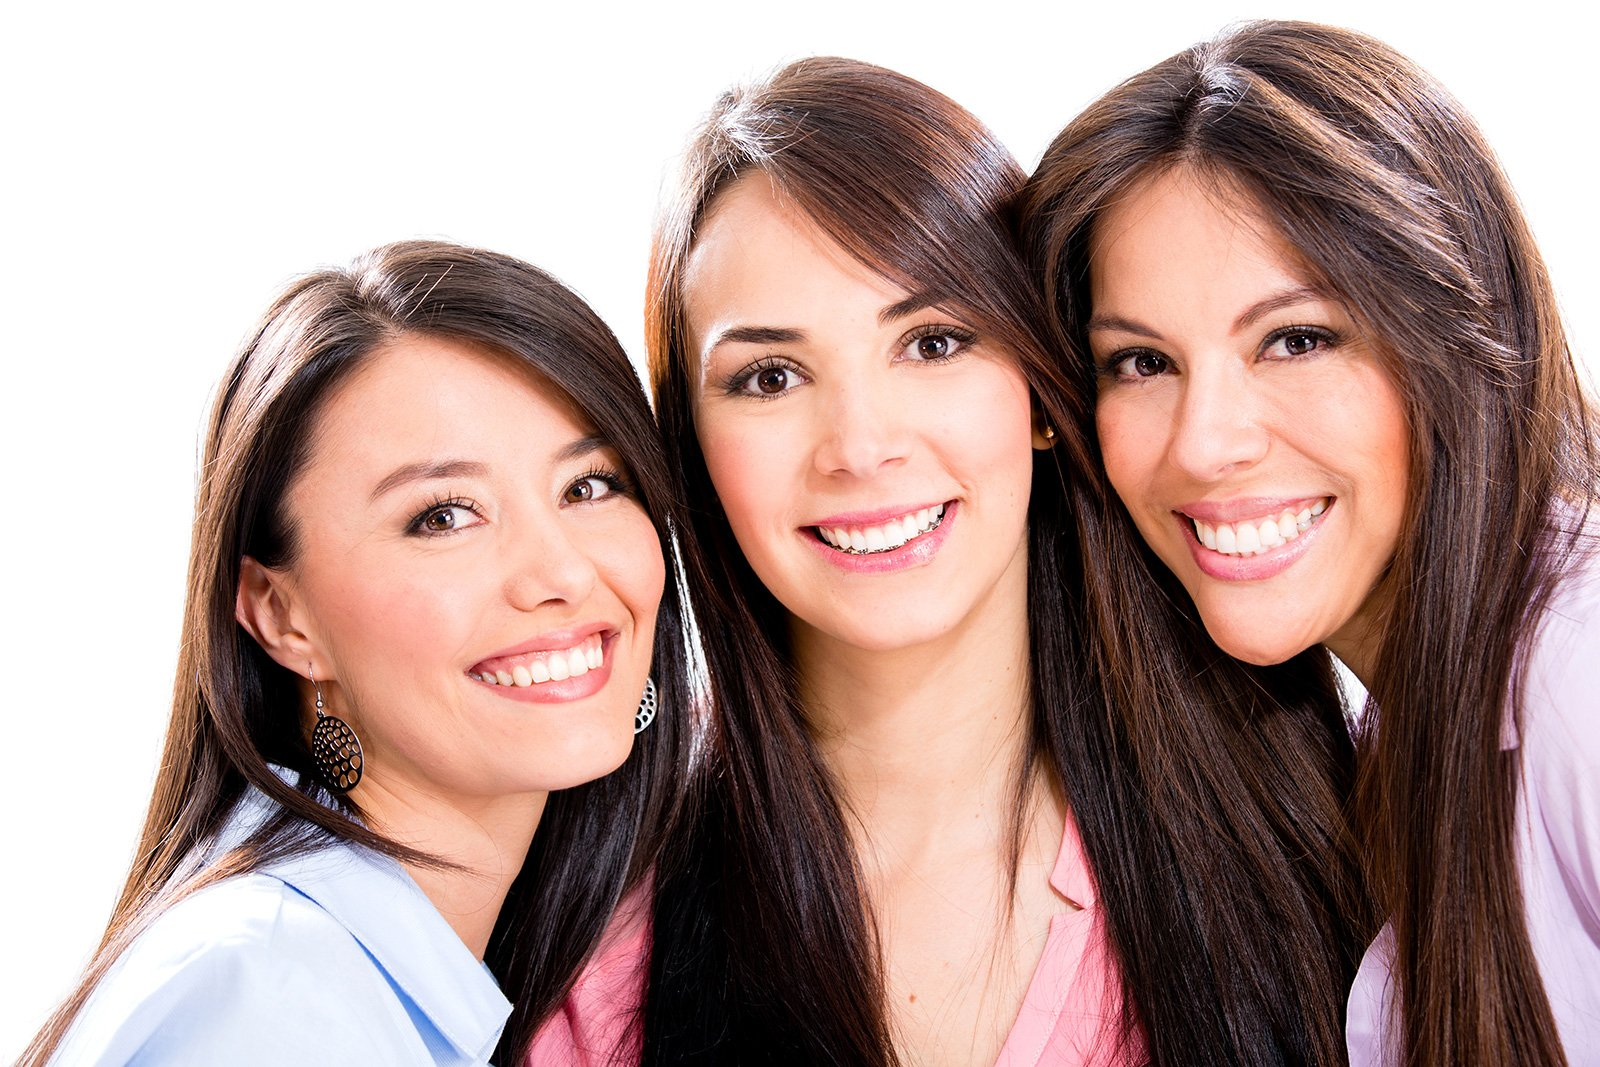 Three smiling young women